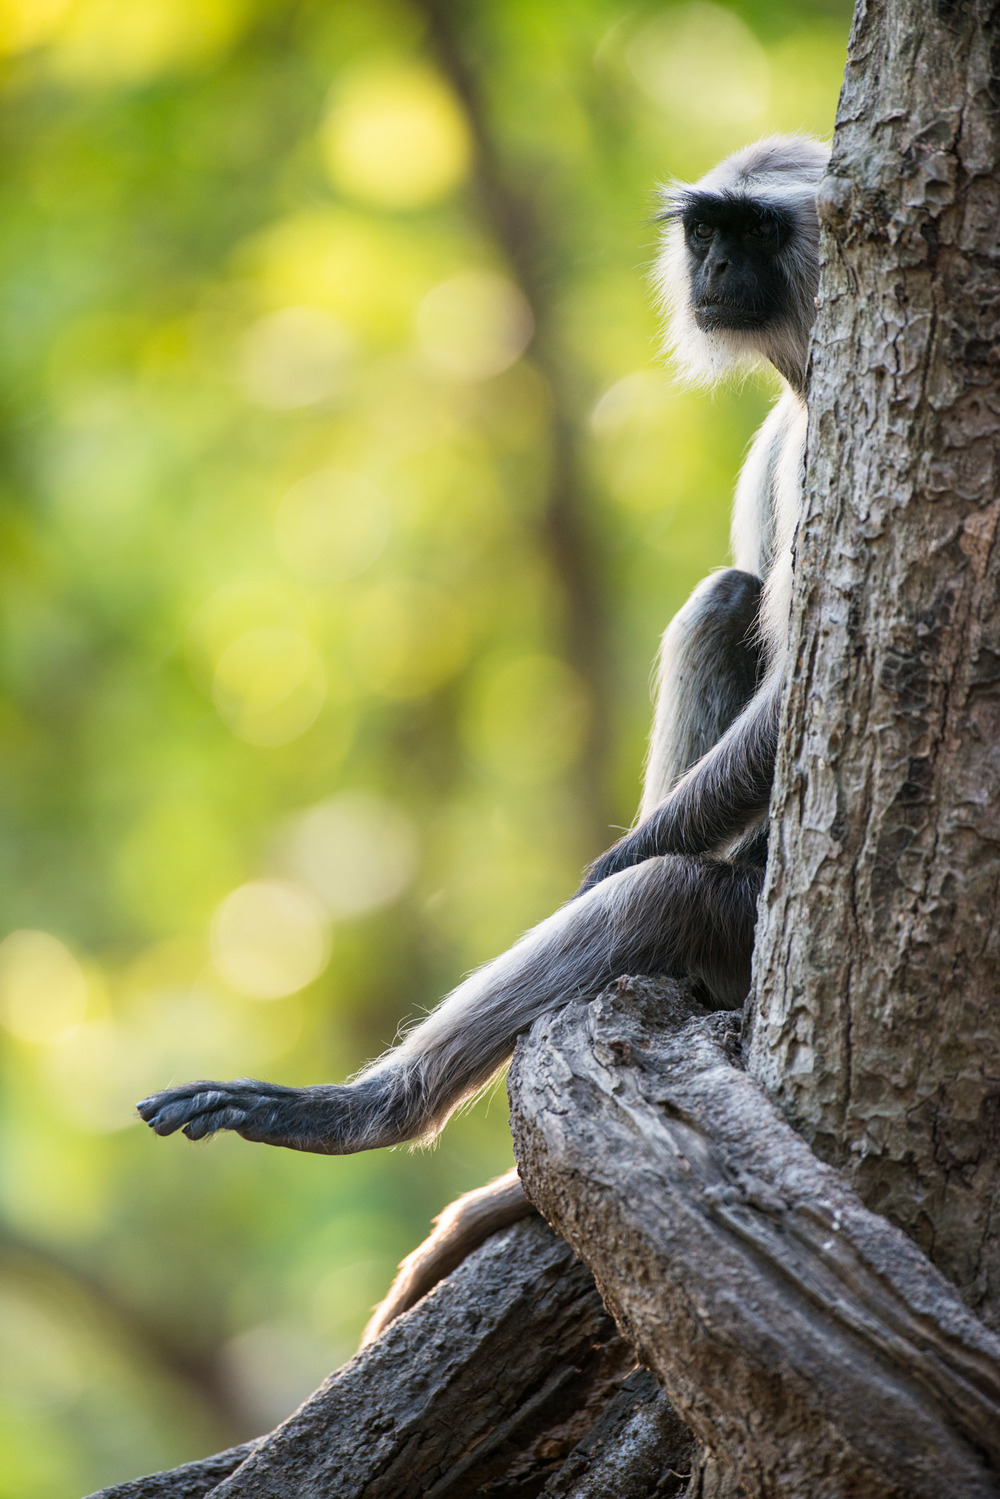 Hanuman langur monkey portrait, Bandhavgarh National Park, Madhya Pradesh, India